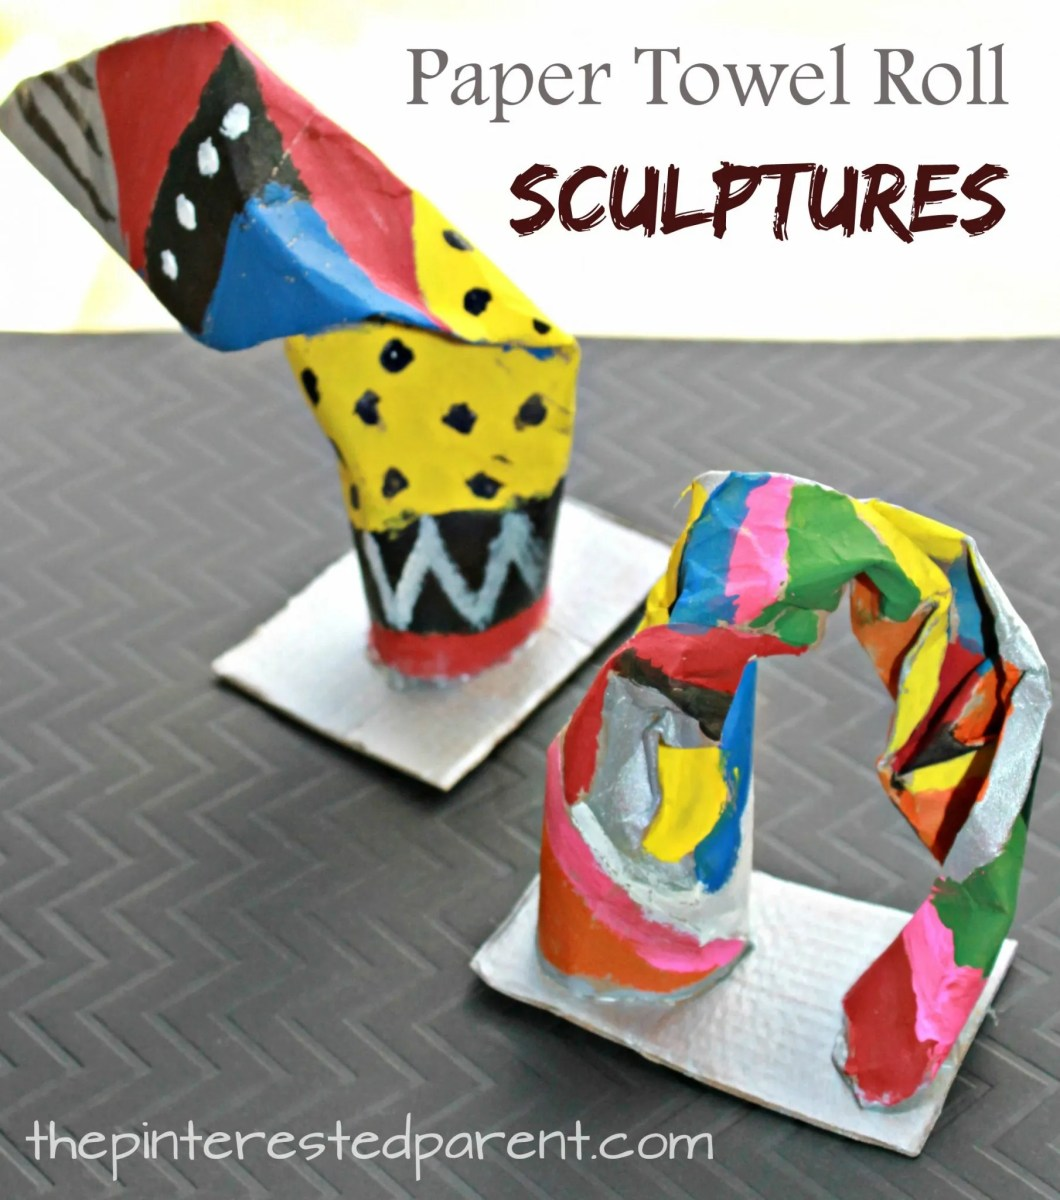 Paper Towel Roll Sculptures